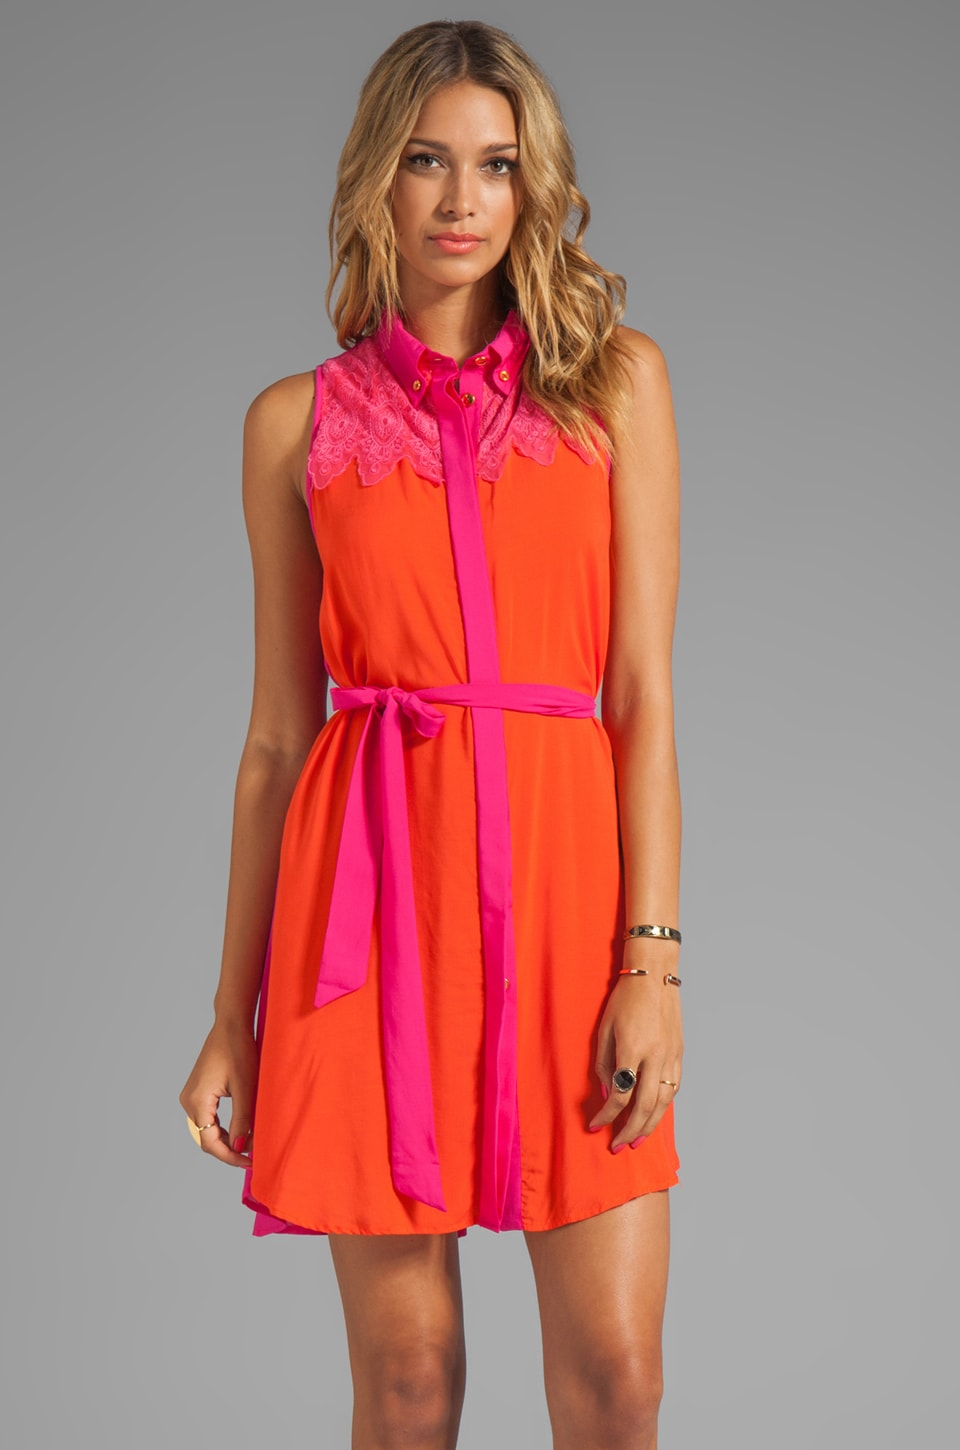 Testament Western Dress in Pink/Orange Combo